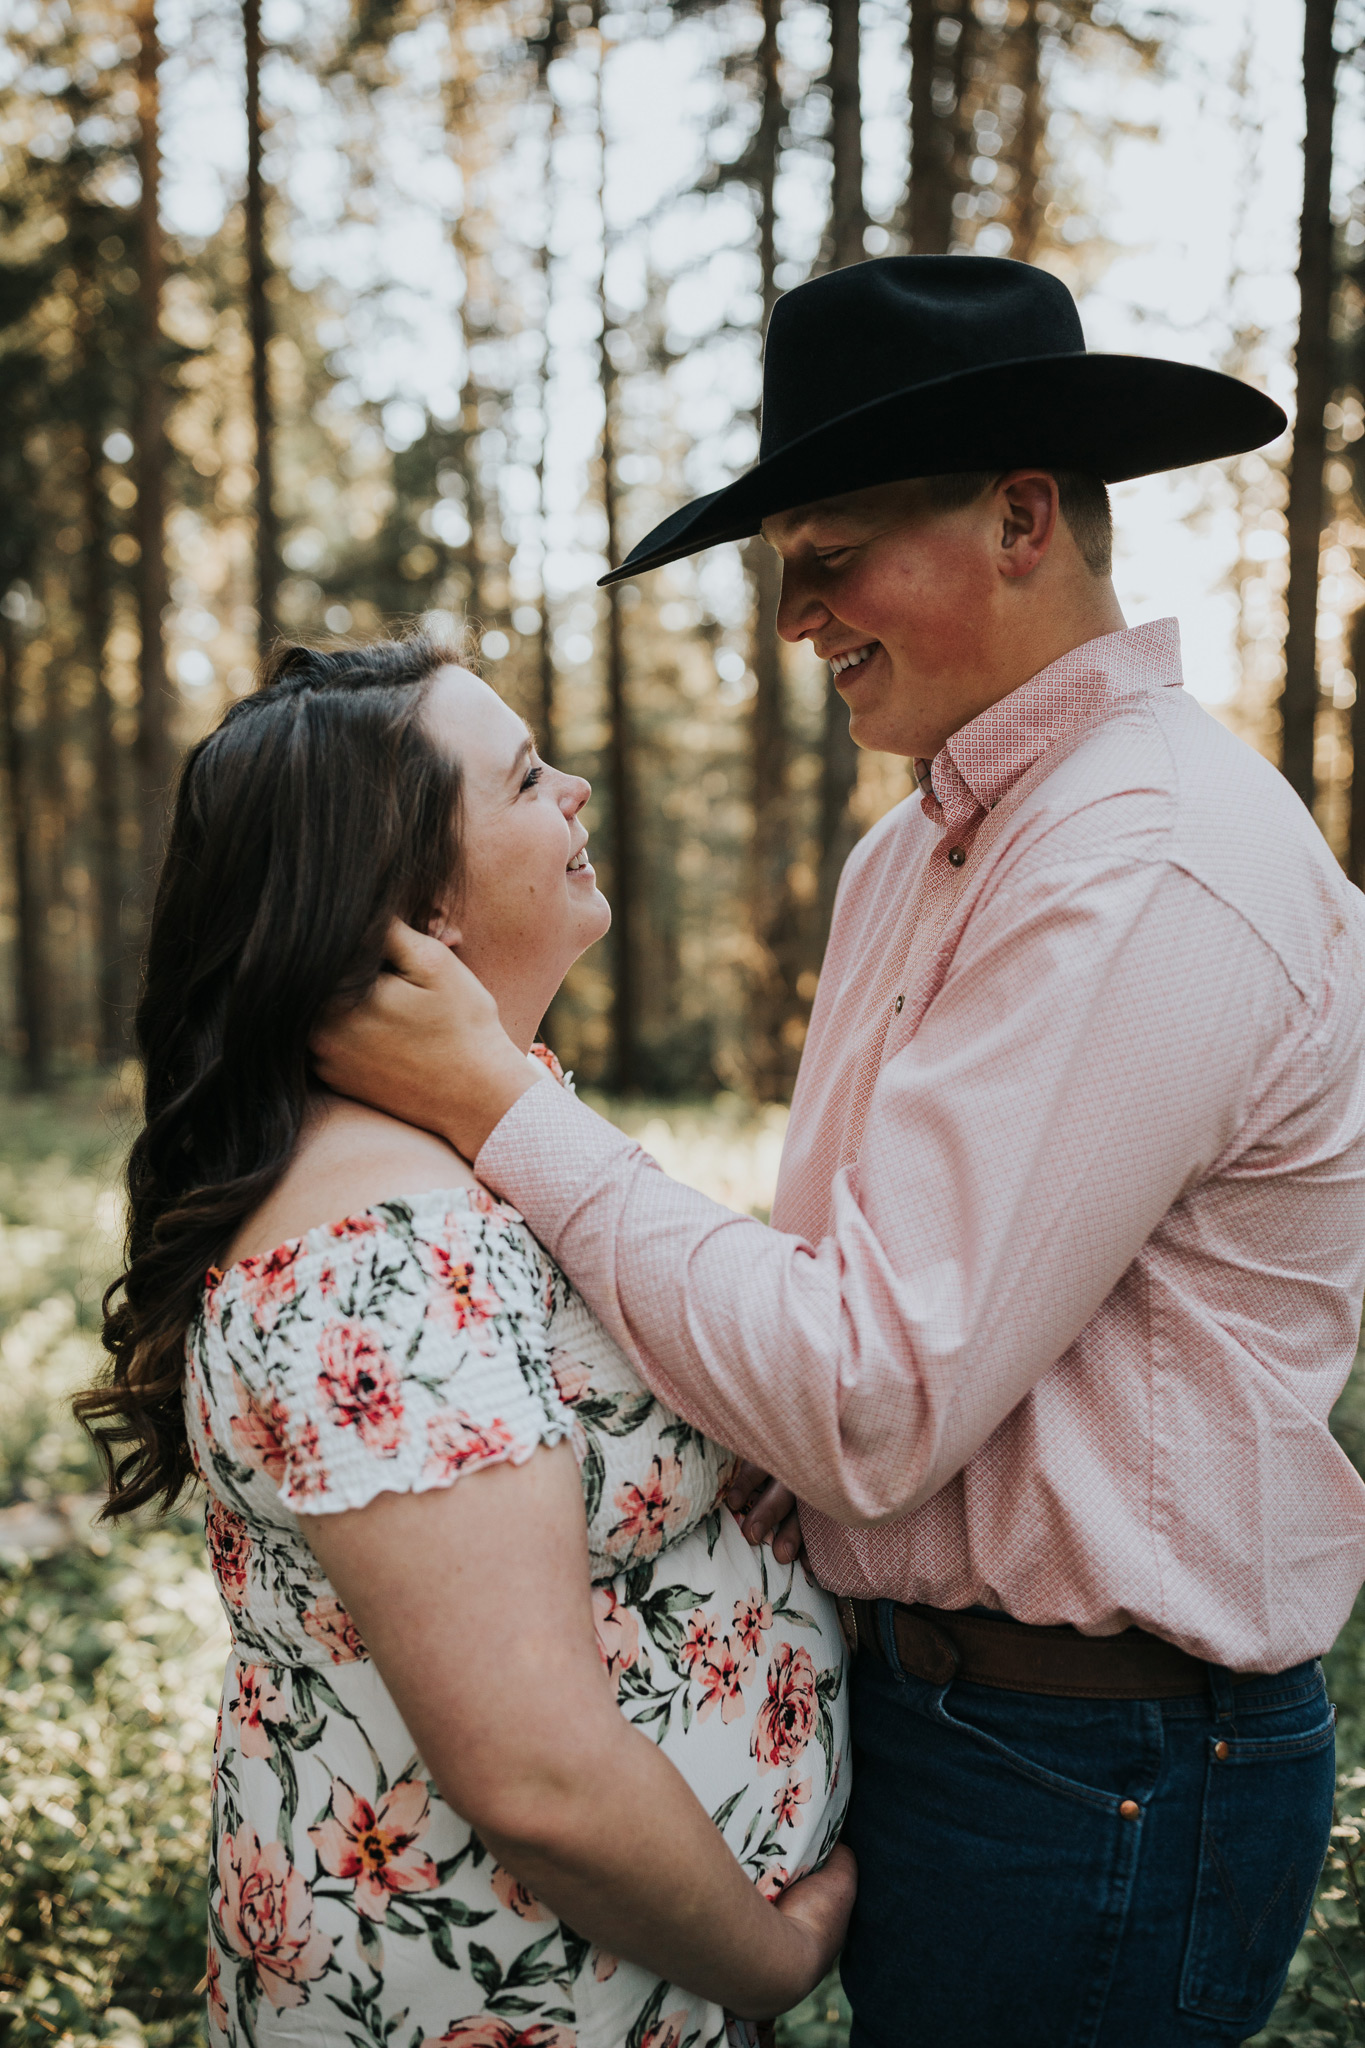 expecting couple facing each other smiling happily elkwater maternity